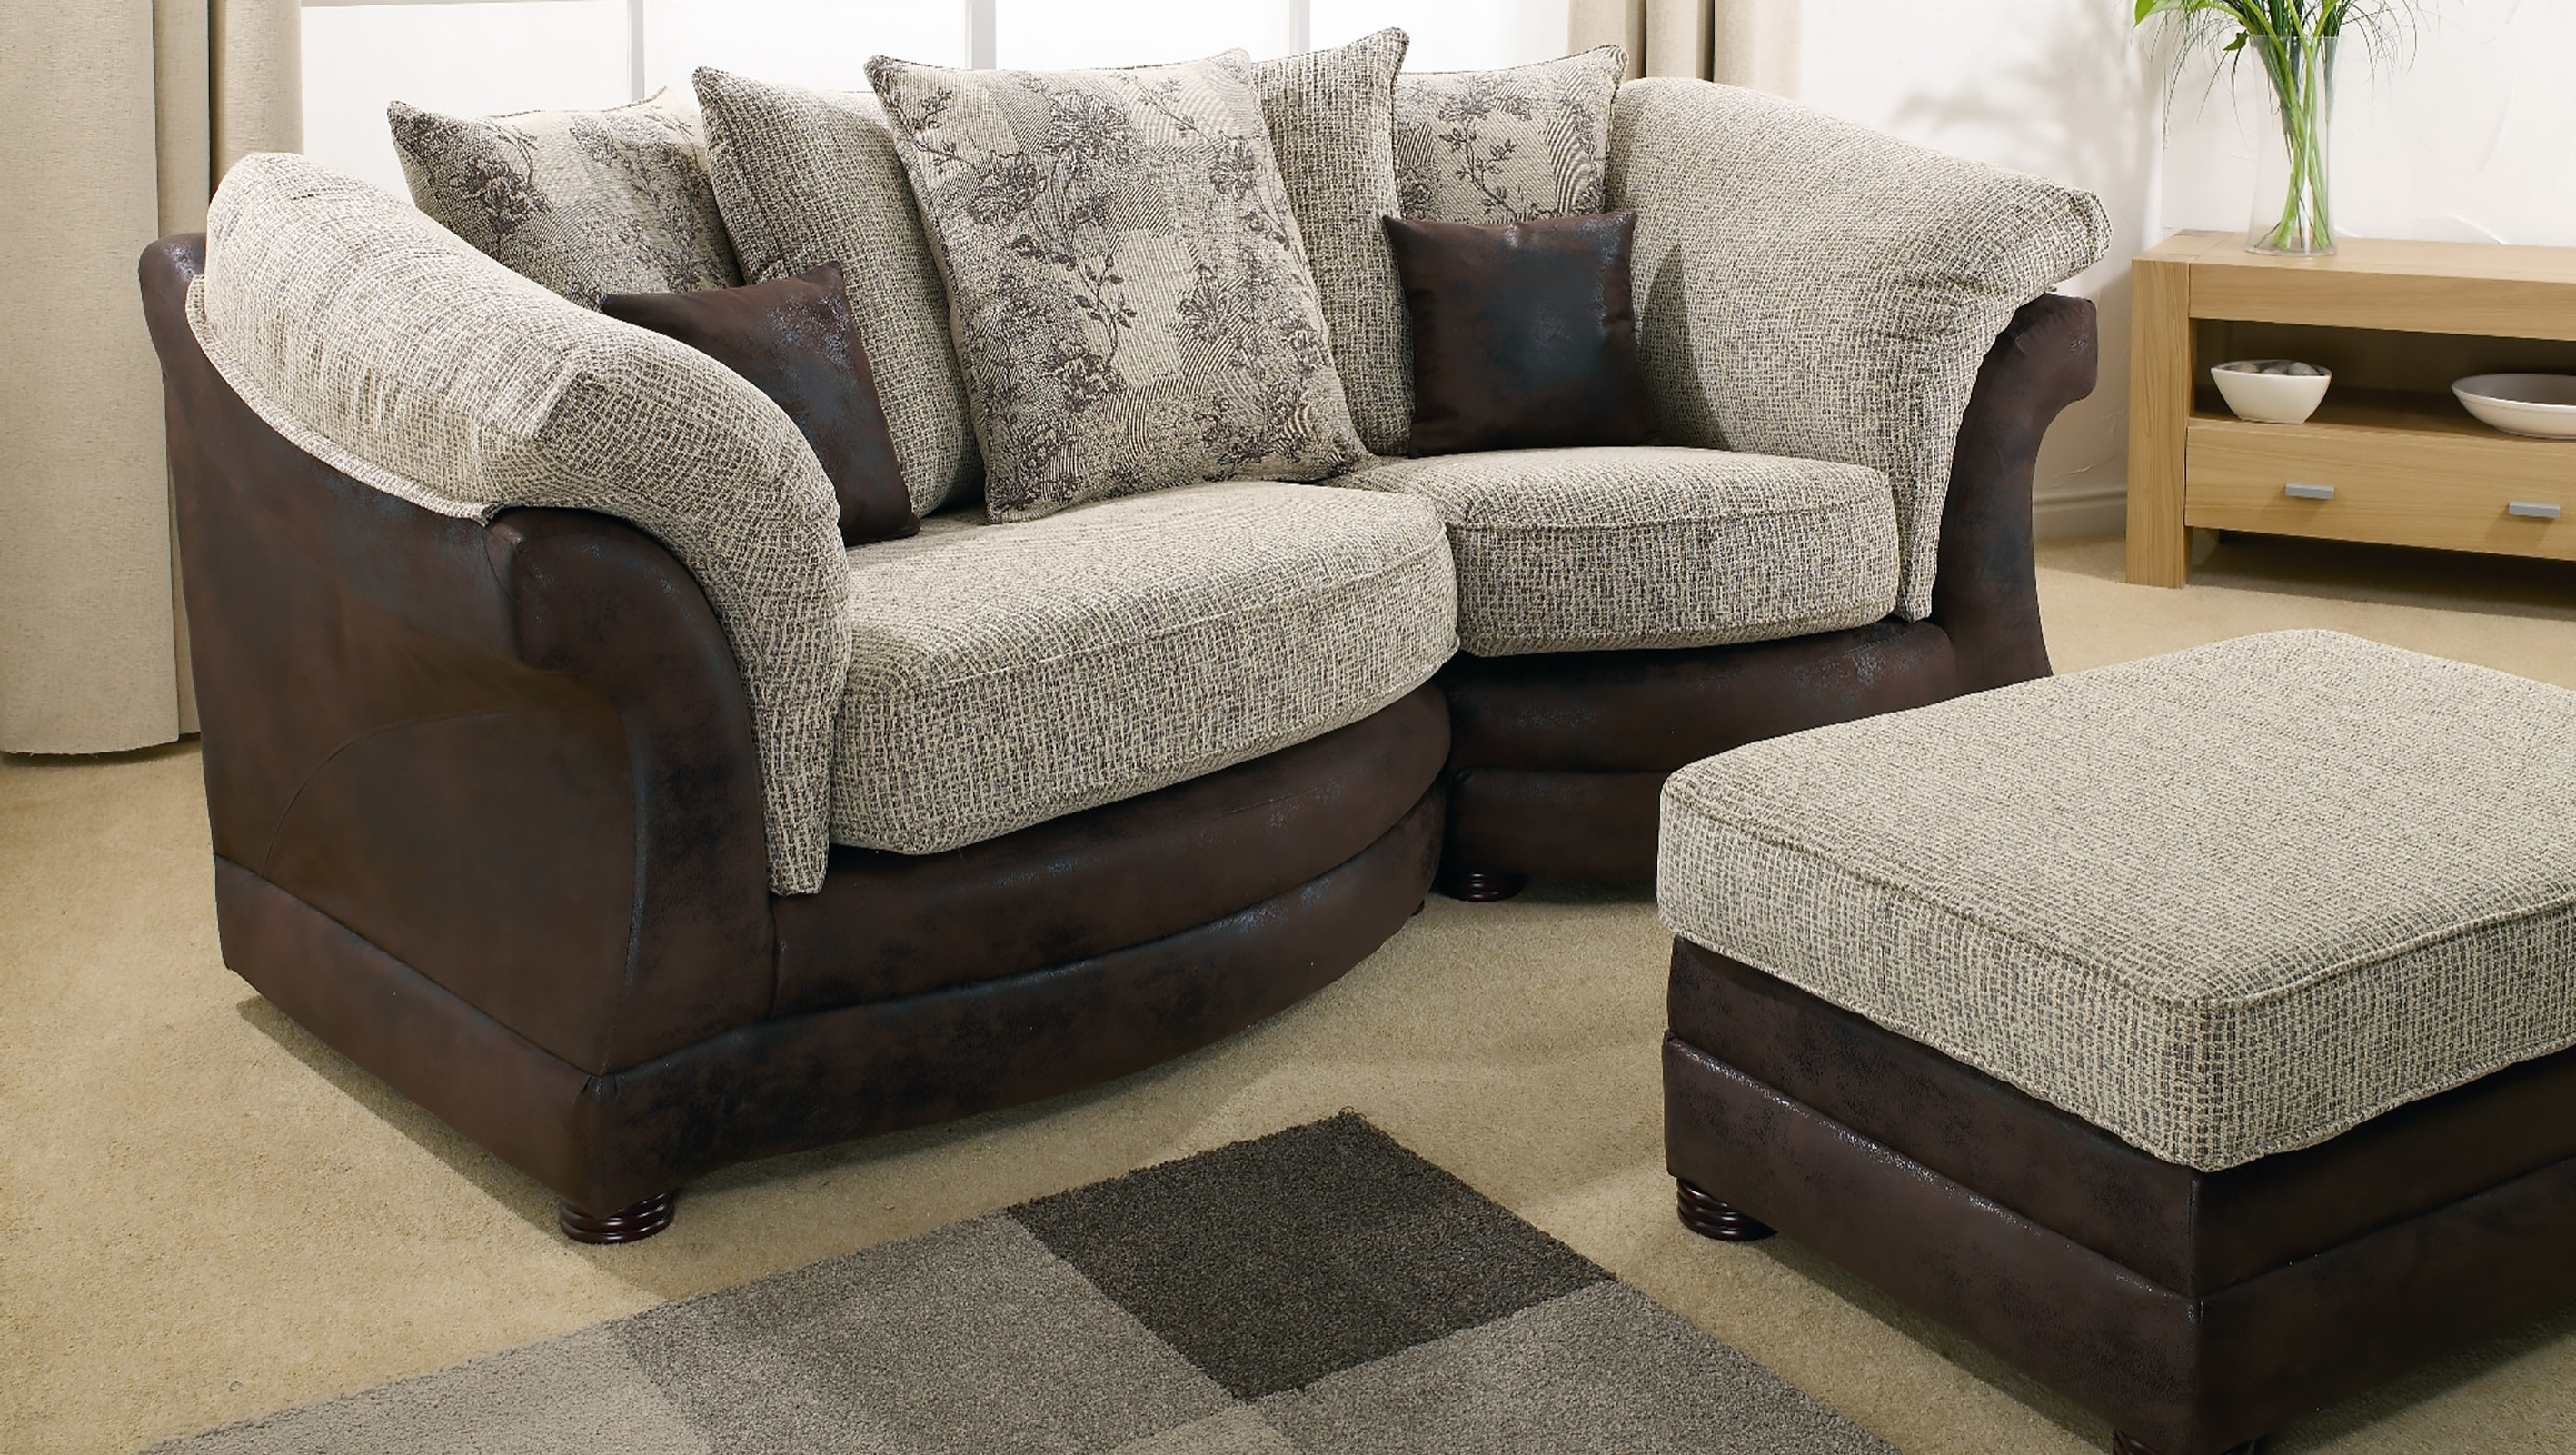 Best And Newest Lebus Maria Snuggle Sofa Cheapest (View 4 of 20)